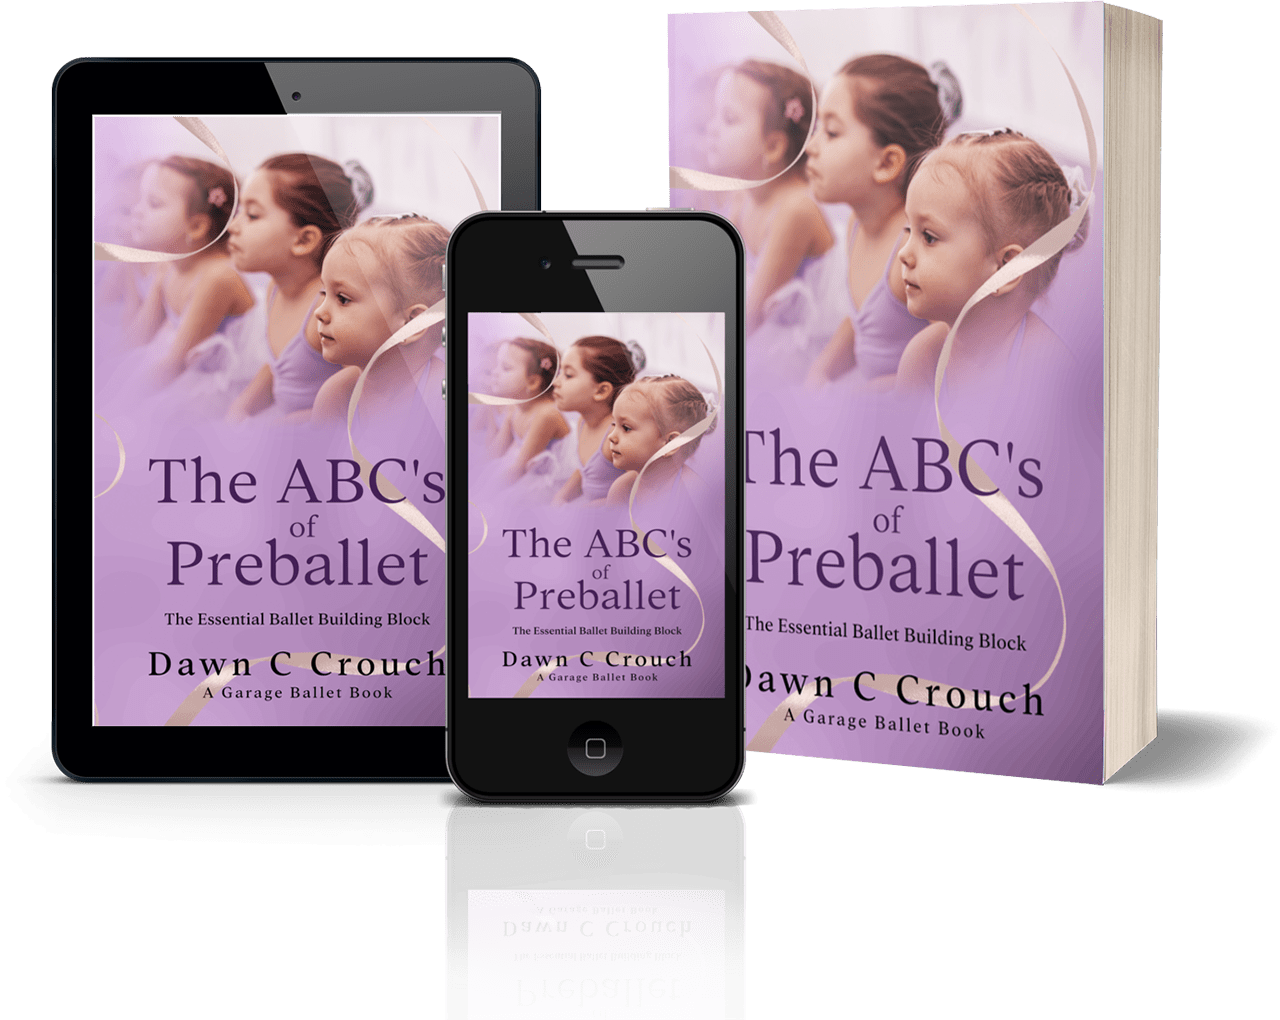 The ABC's of Preballet by Dawn C. Crouch